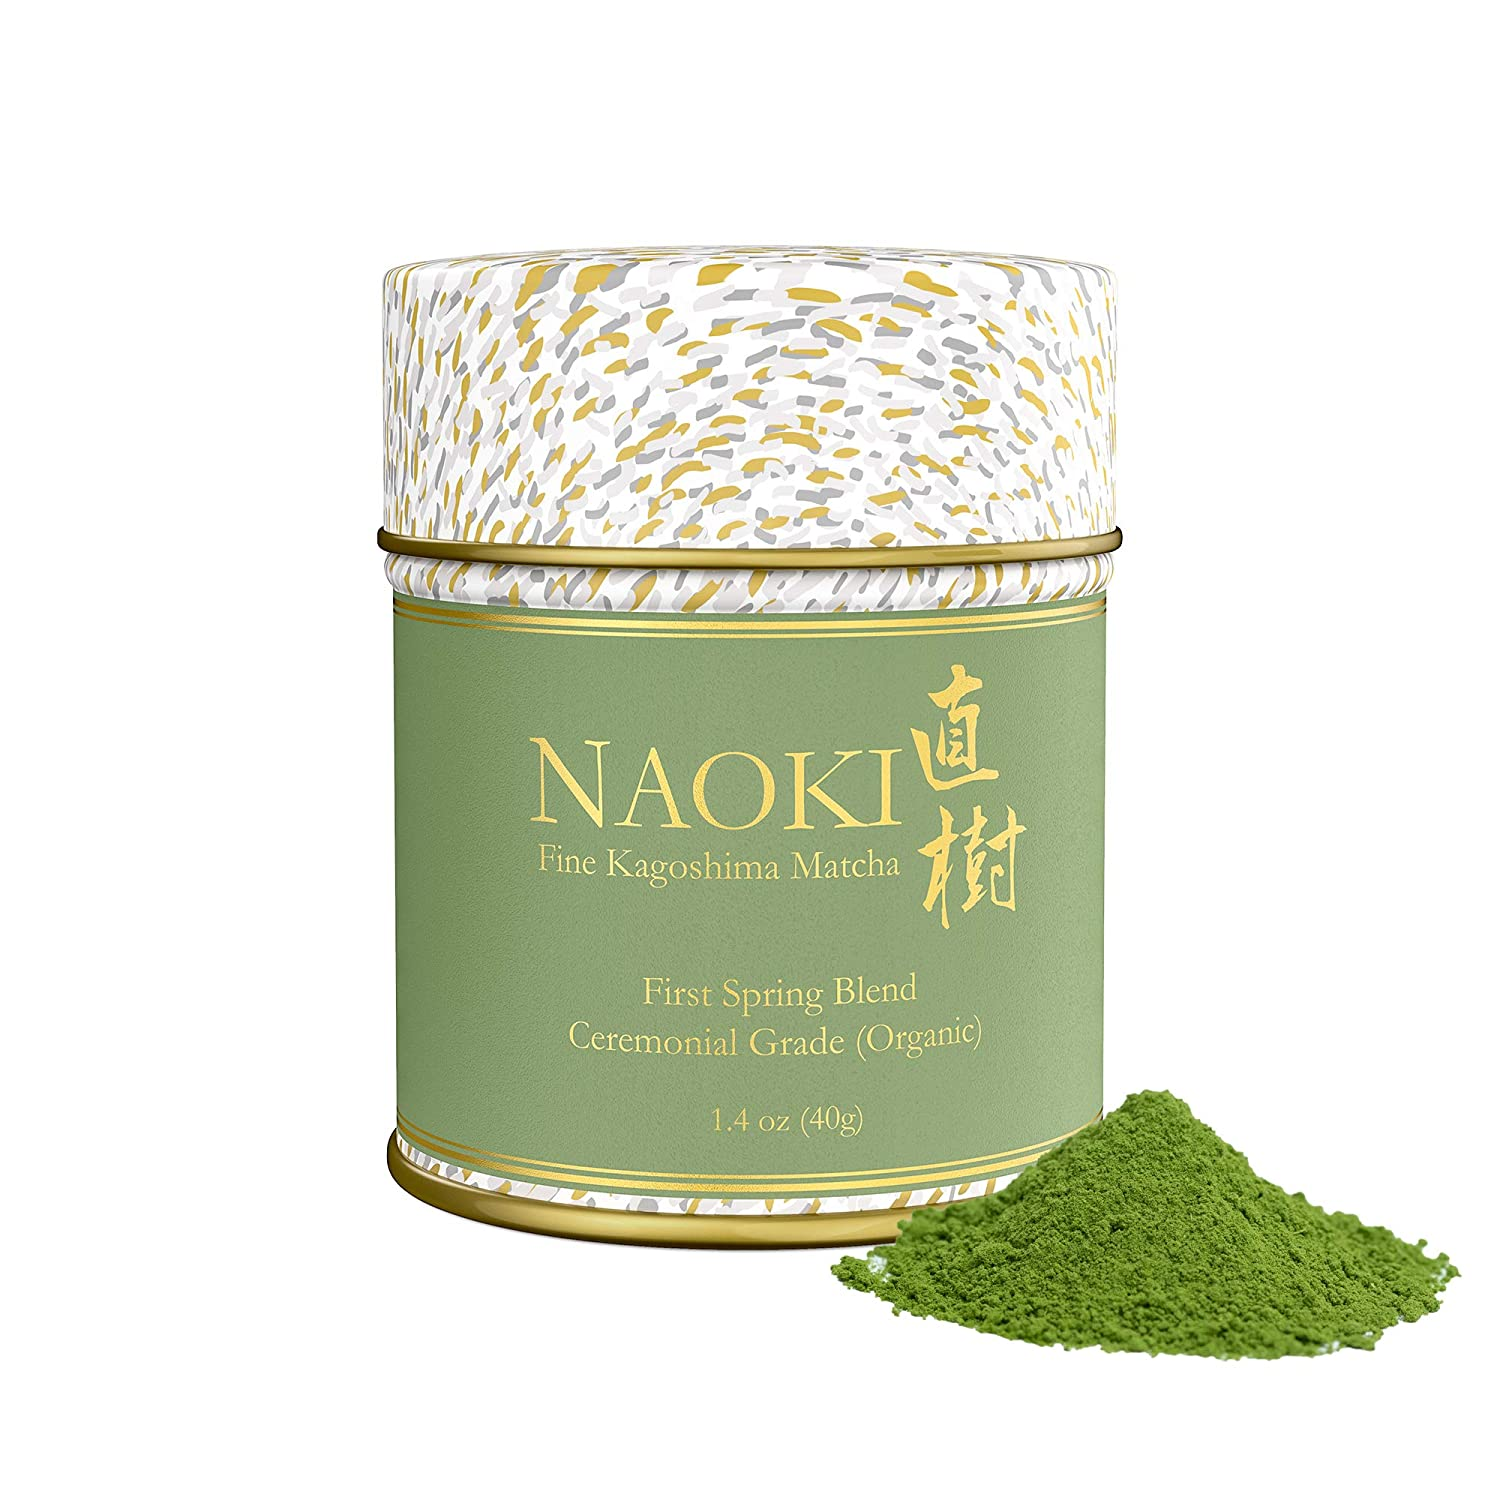 Naoki Matcha free Super beauty product restock quality top Organic Ceremonial First Spring Authen – Blend